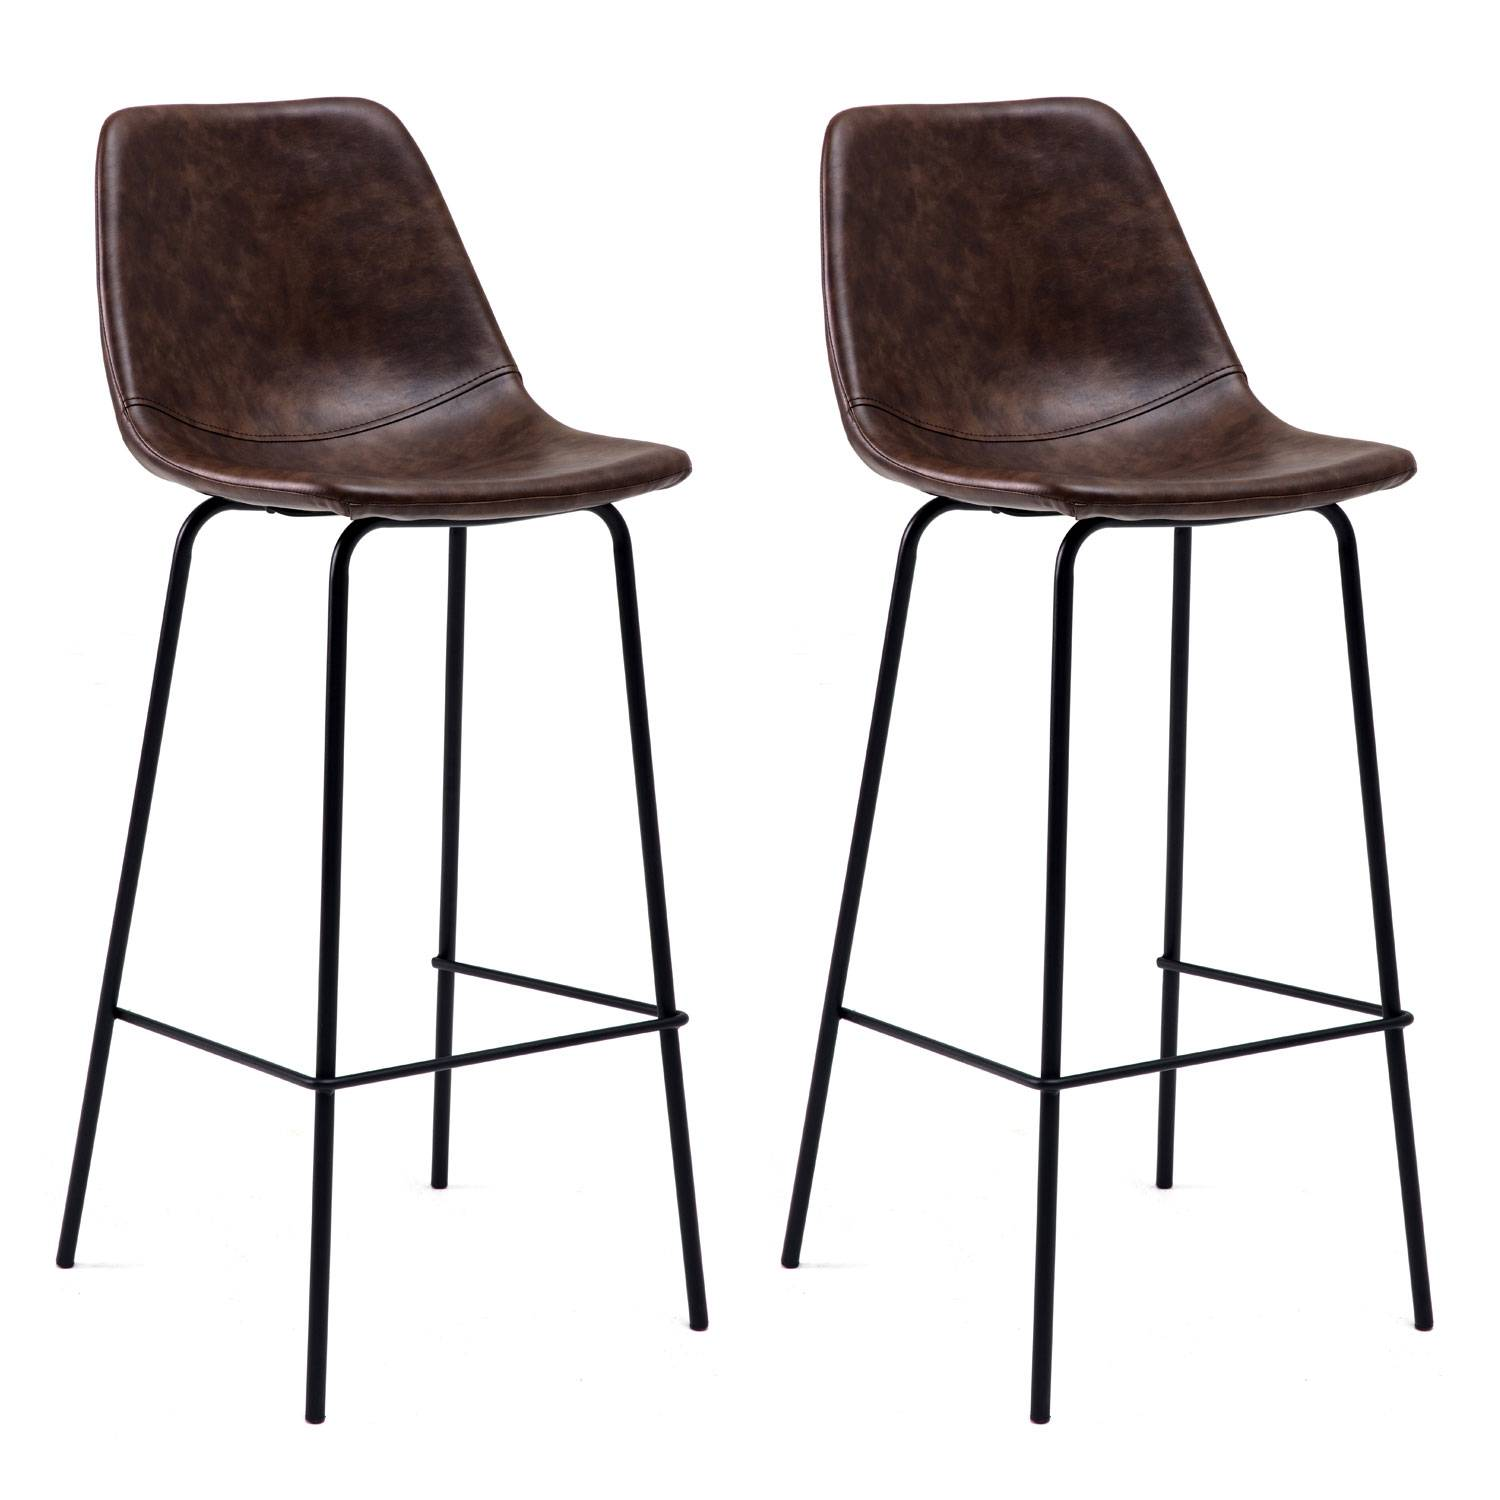 lot de 2 tabourets de bar vintage marron 75cm  lucien